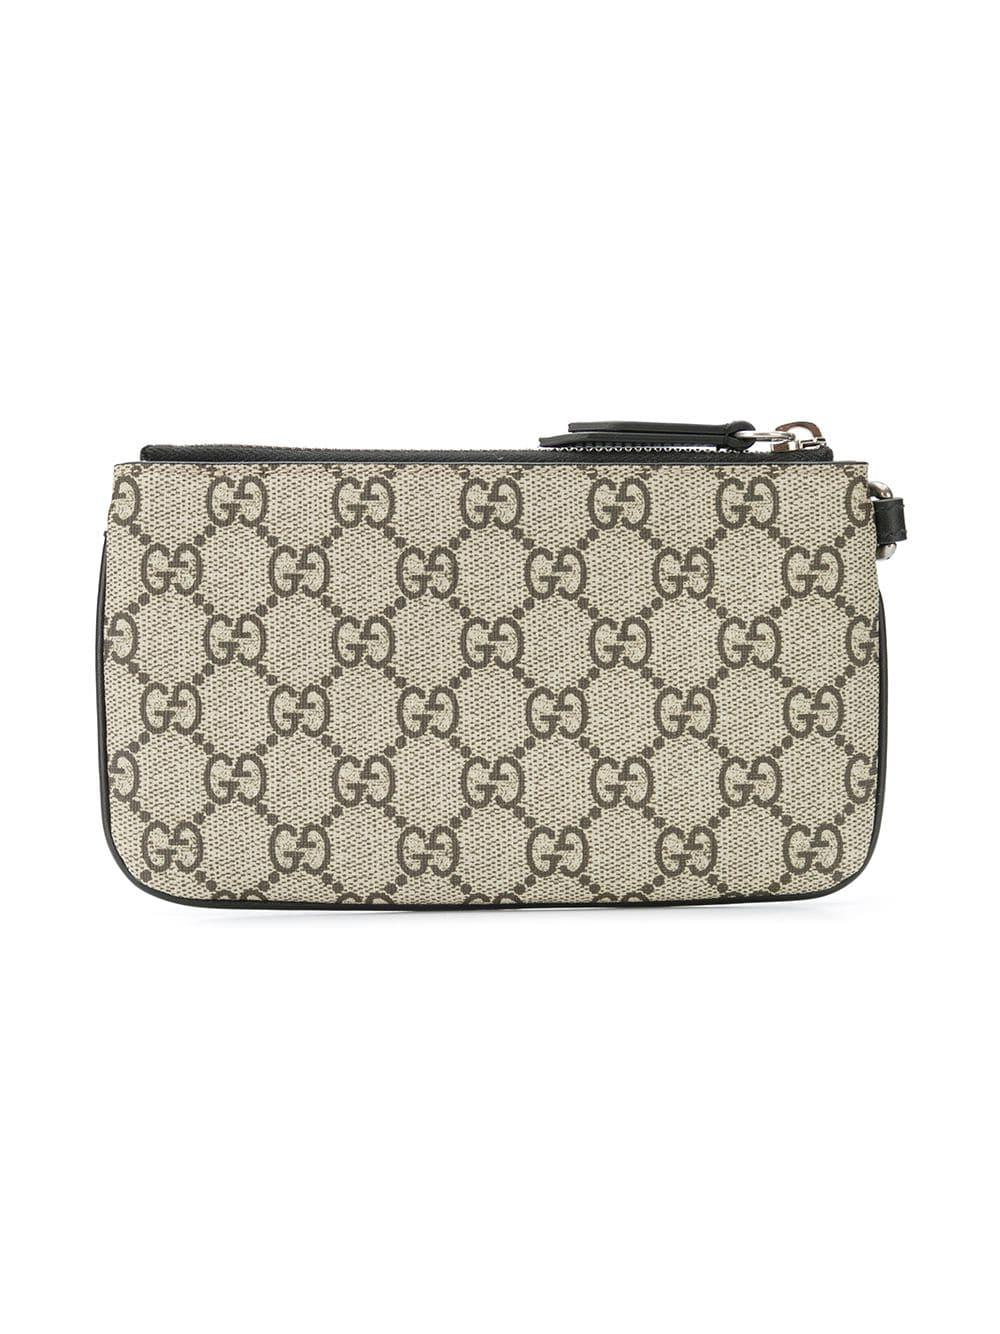 6a76a3296e3 Lyst - Gucci Snake Print GG Supreme Card Holder in Brown for Men